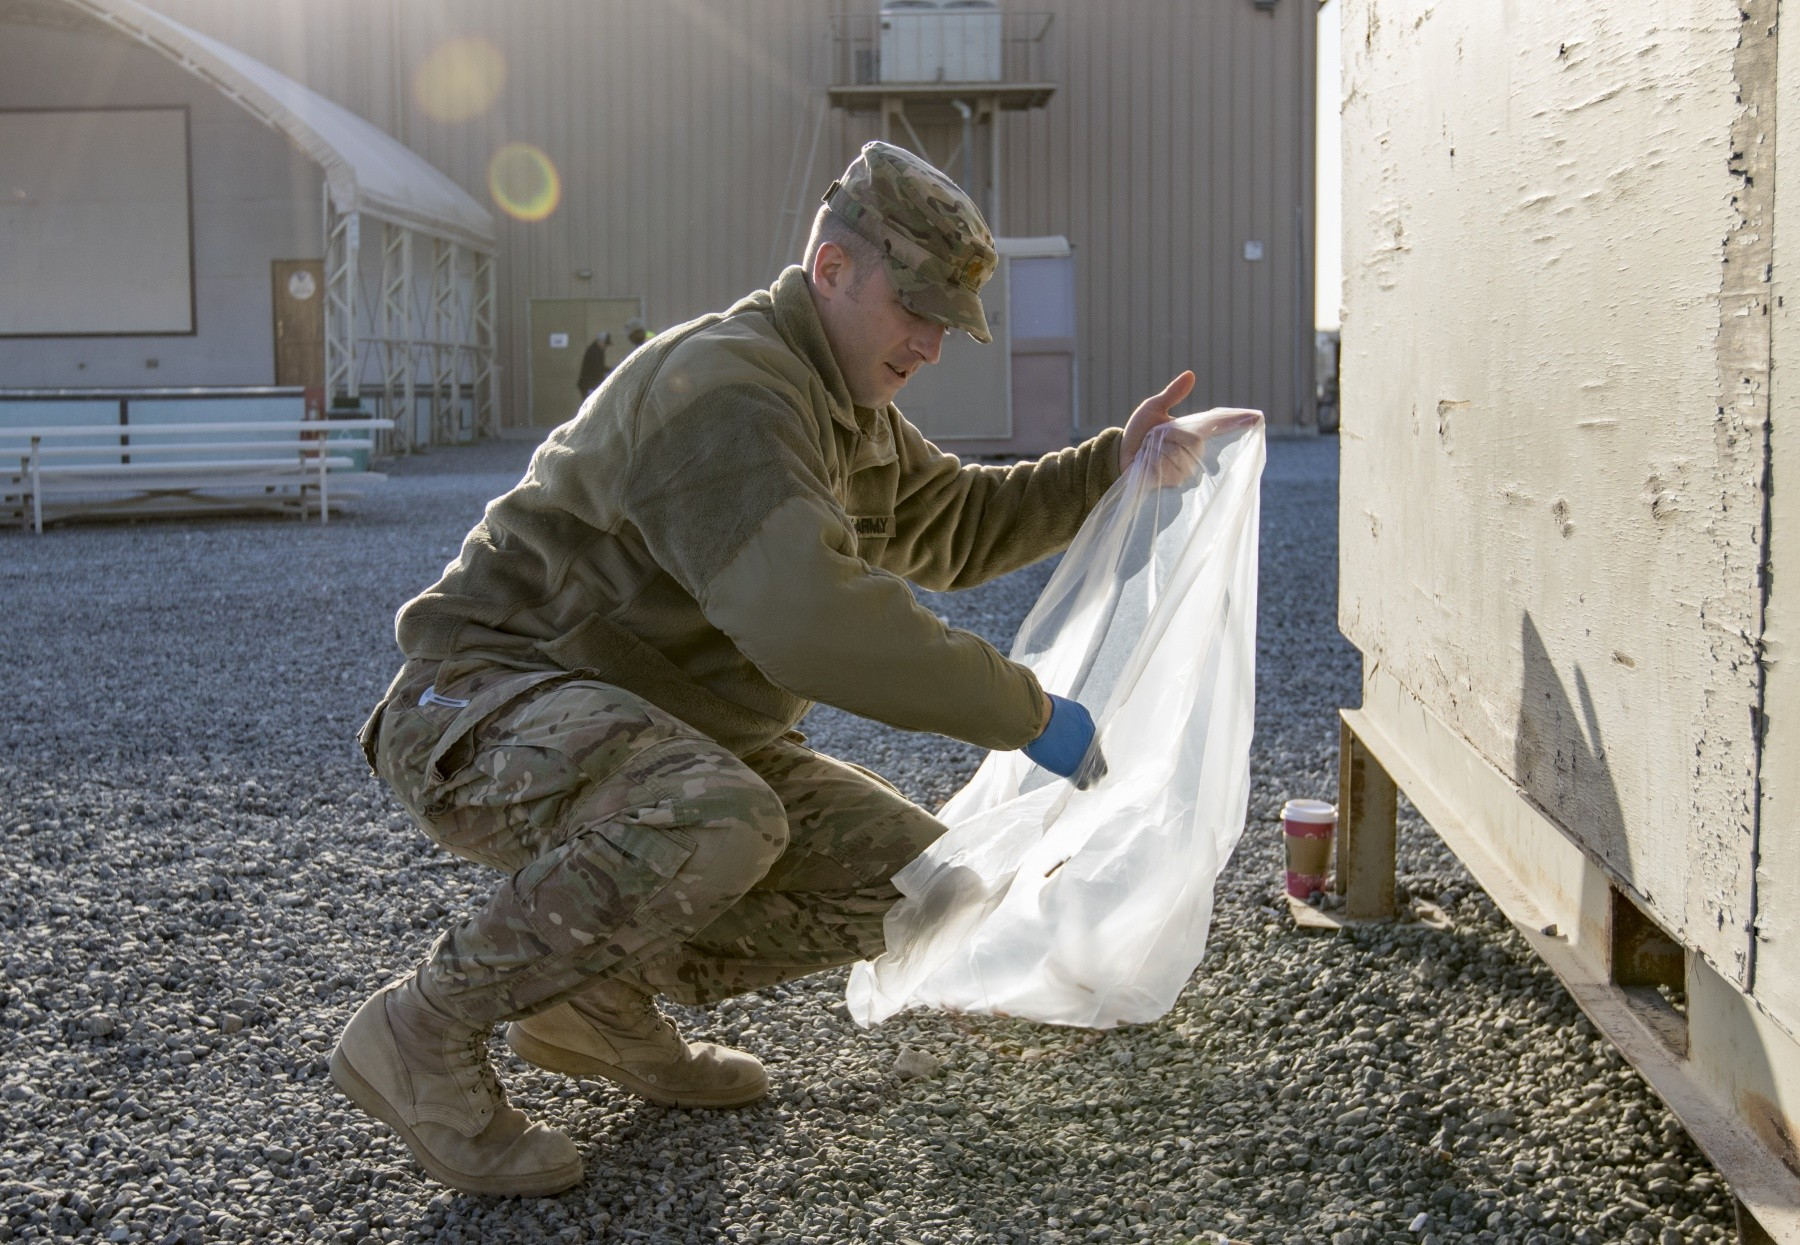 US military digs up farmers field to search for remains